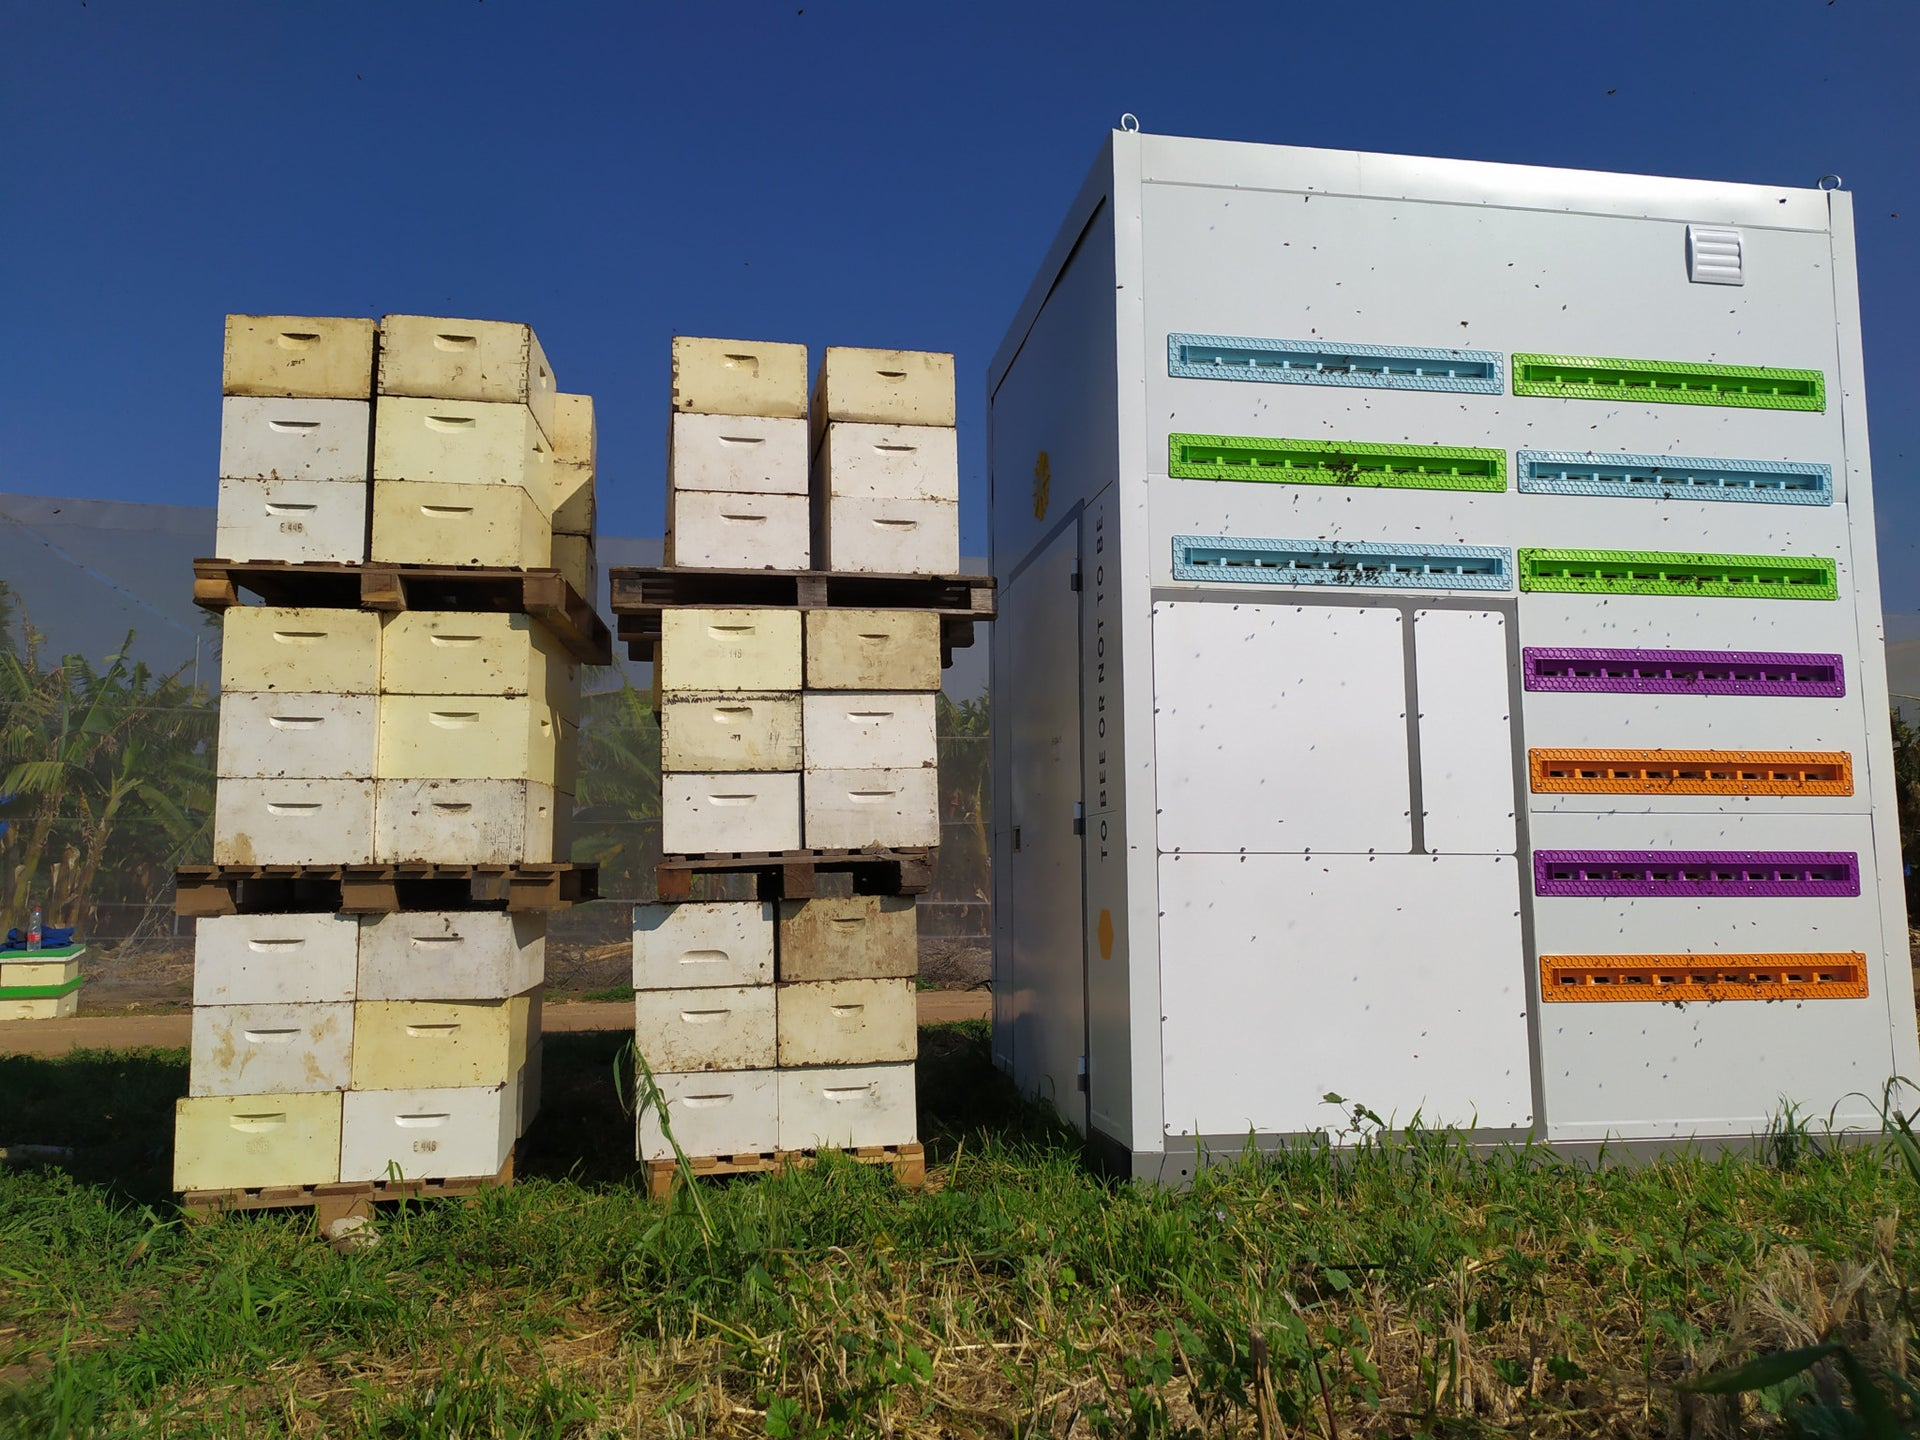 Wooden crates have been used for over 170 years in beekeeping. BeeWise's smart hives allow beekeepers to take a look inside their hives remotely and instruct a robot to take any action necessary